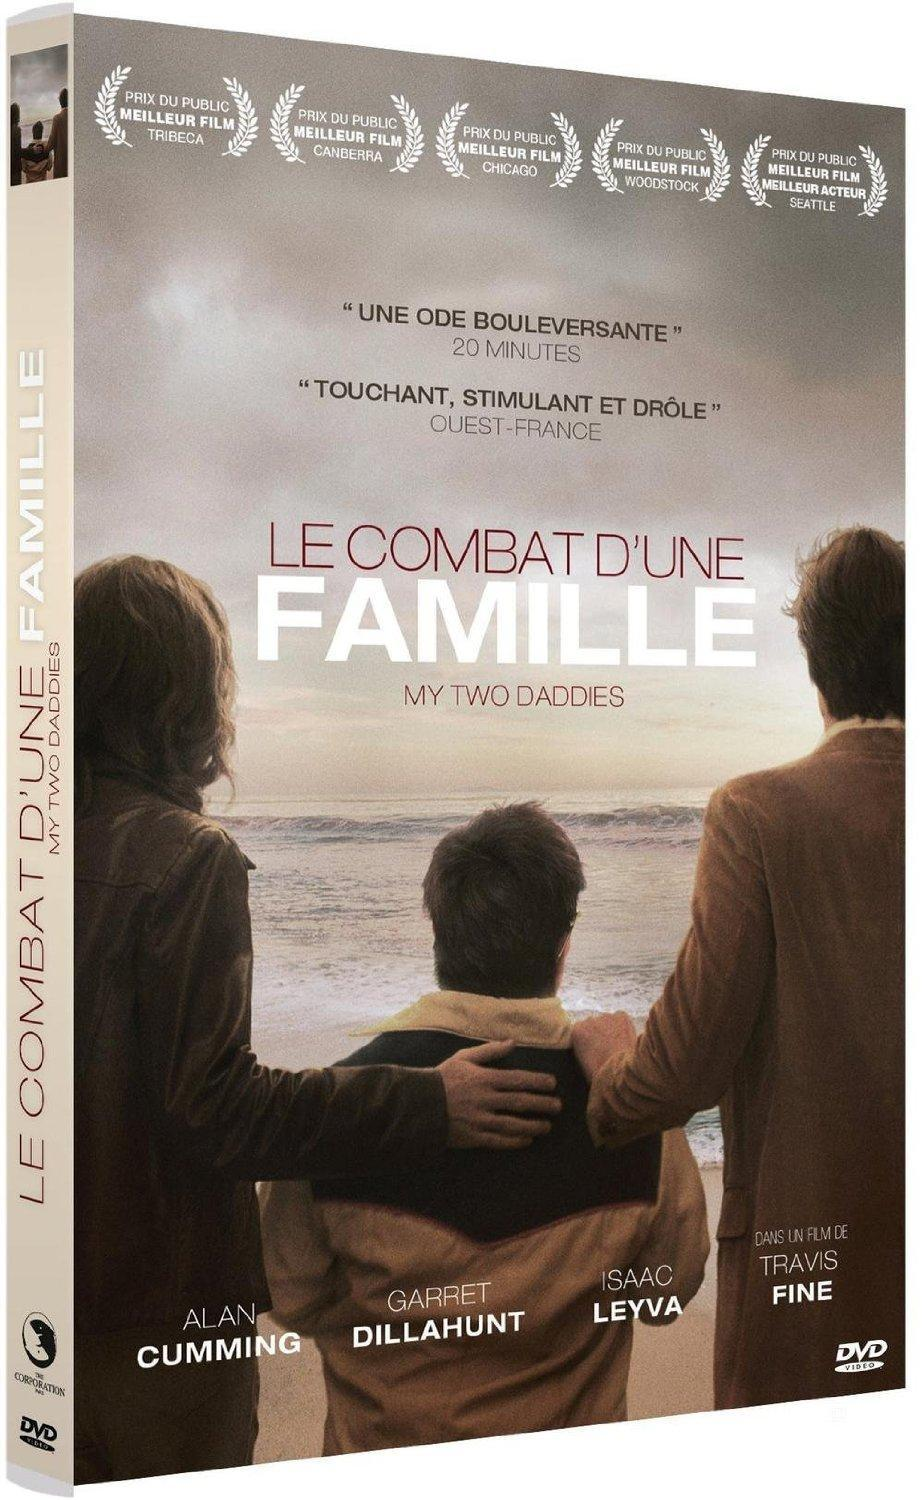 Le combat d'une famille - my two daddies